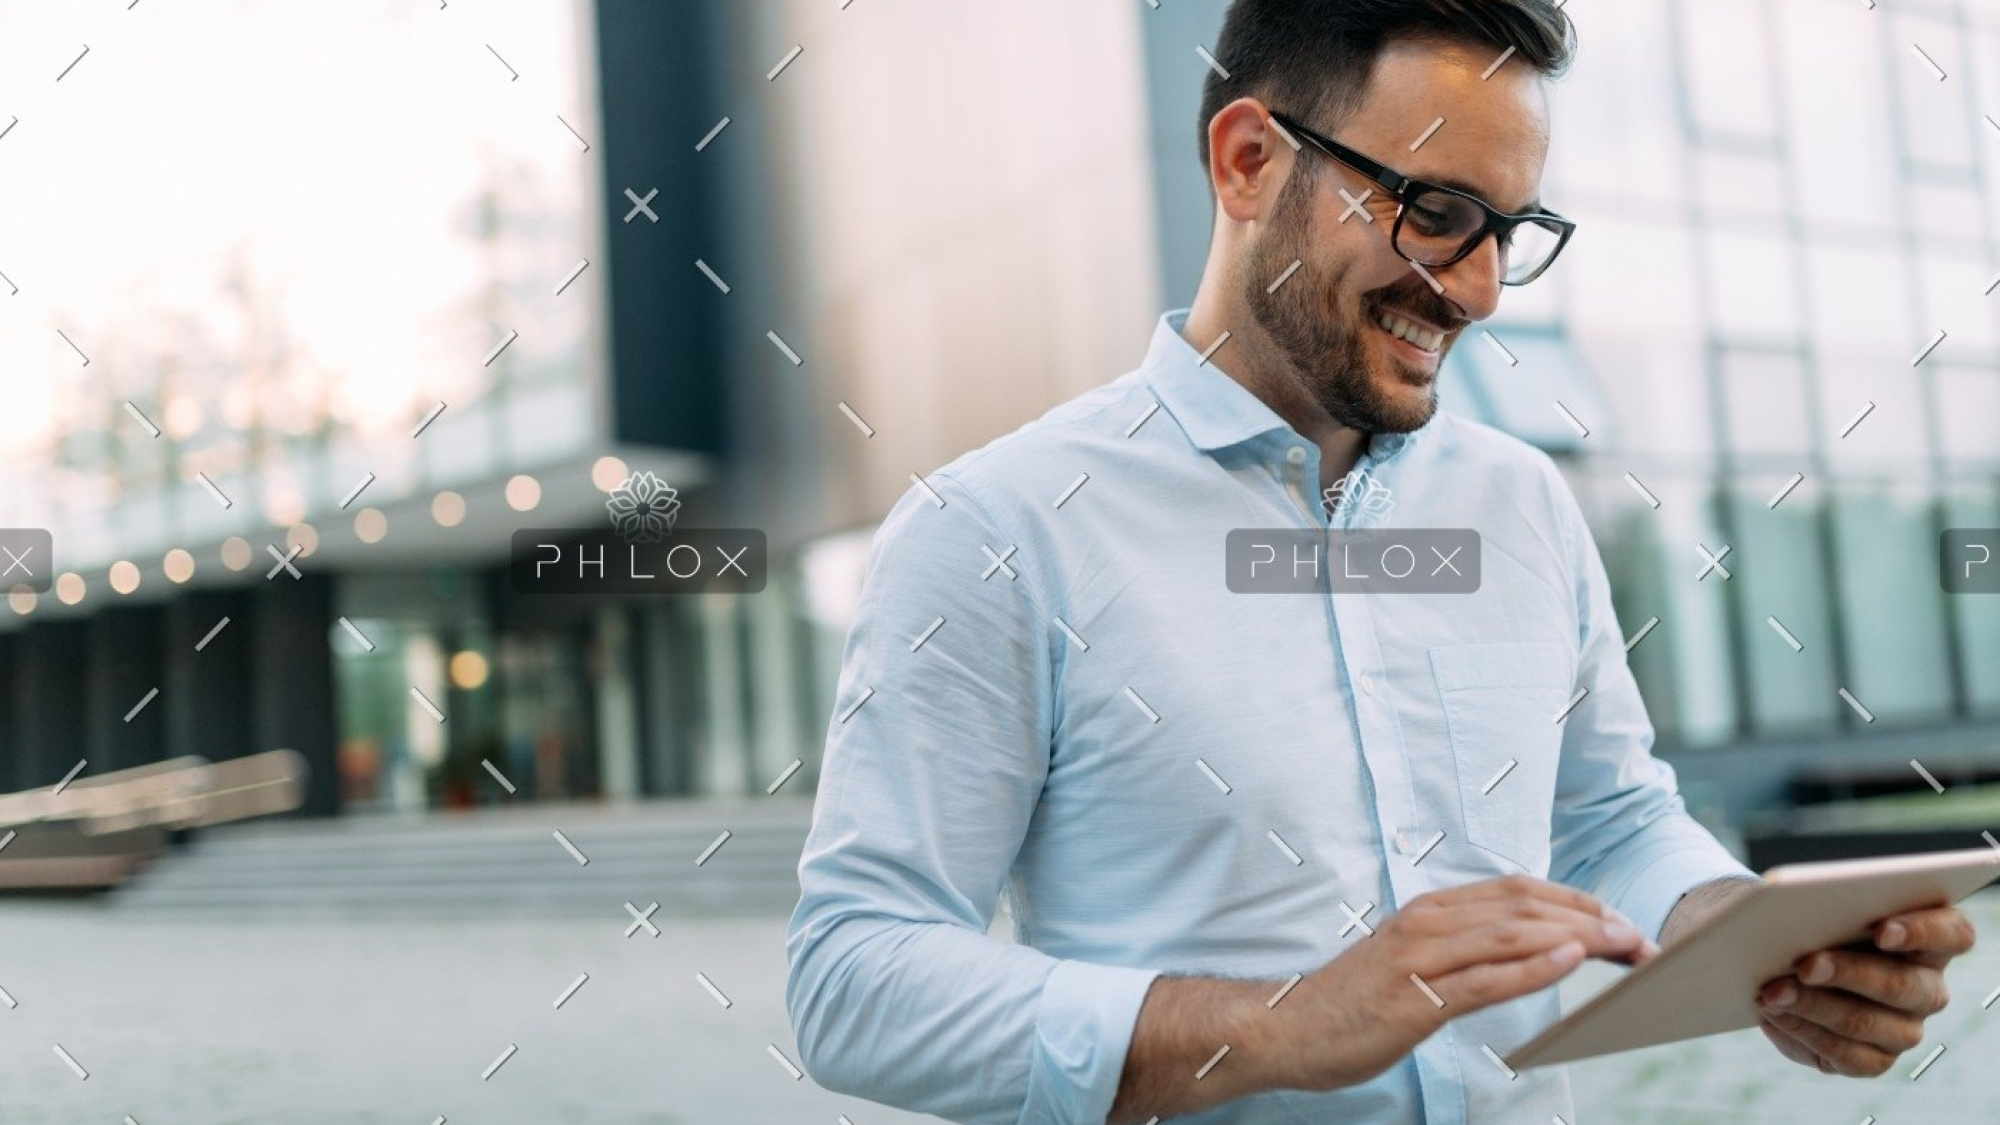 demo-attachment-2721-portrait-of-businessman-in-glasses-holding-tablet-AWVHCJU